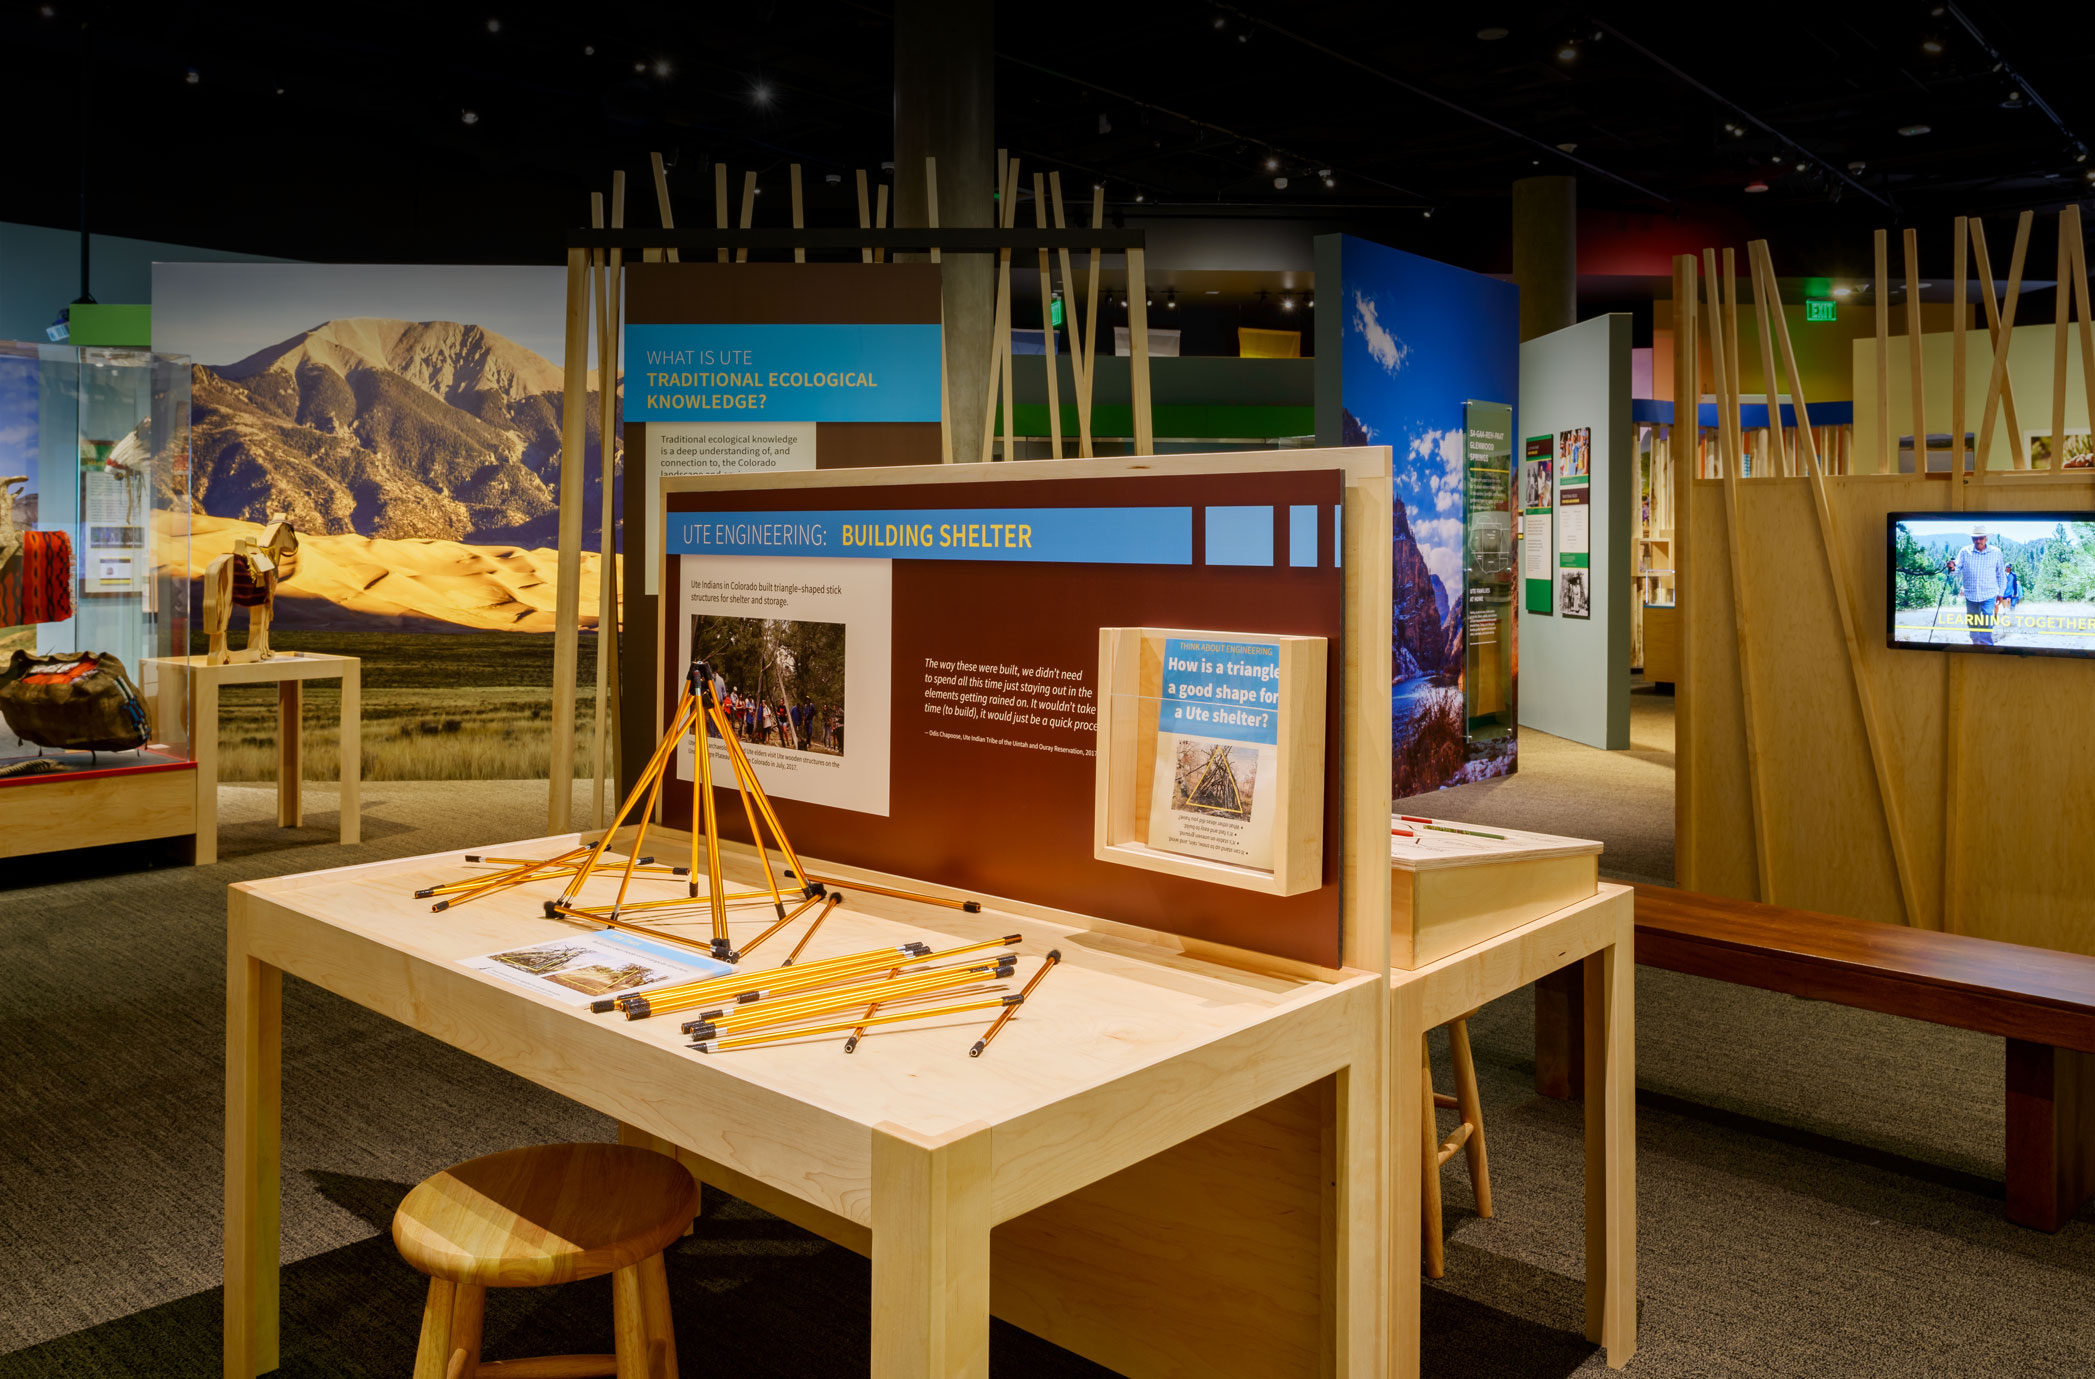 A table with a building interactive in front of a room of exhibits that include large scale landscape photographs